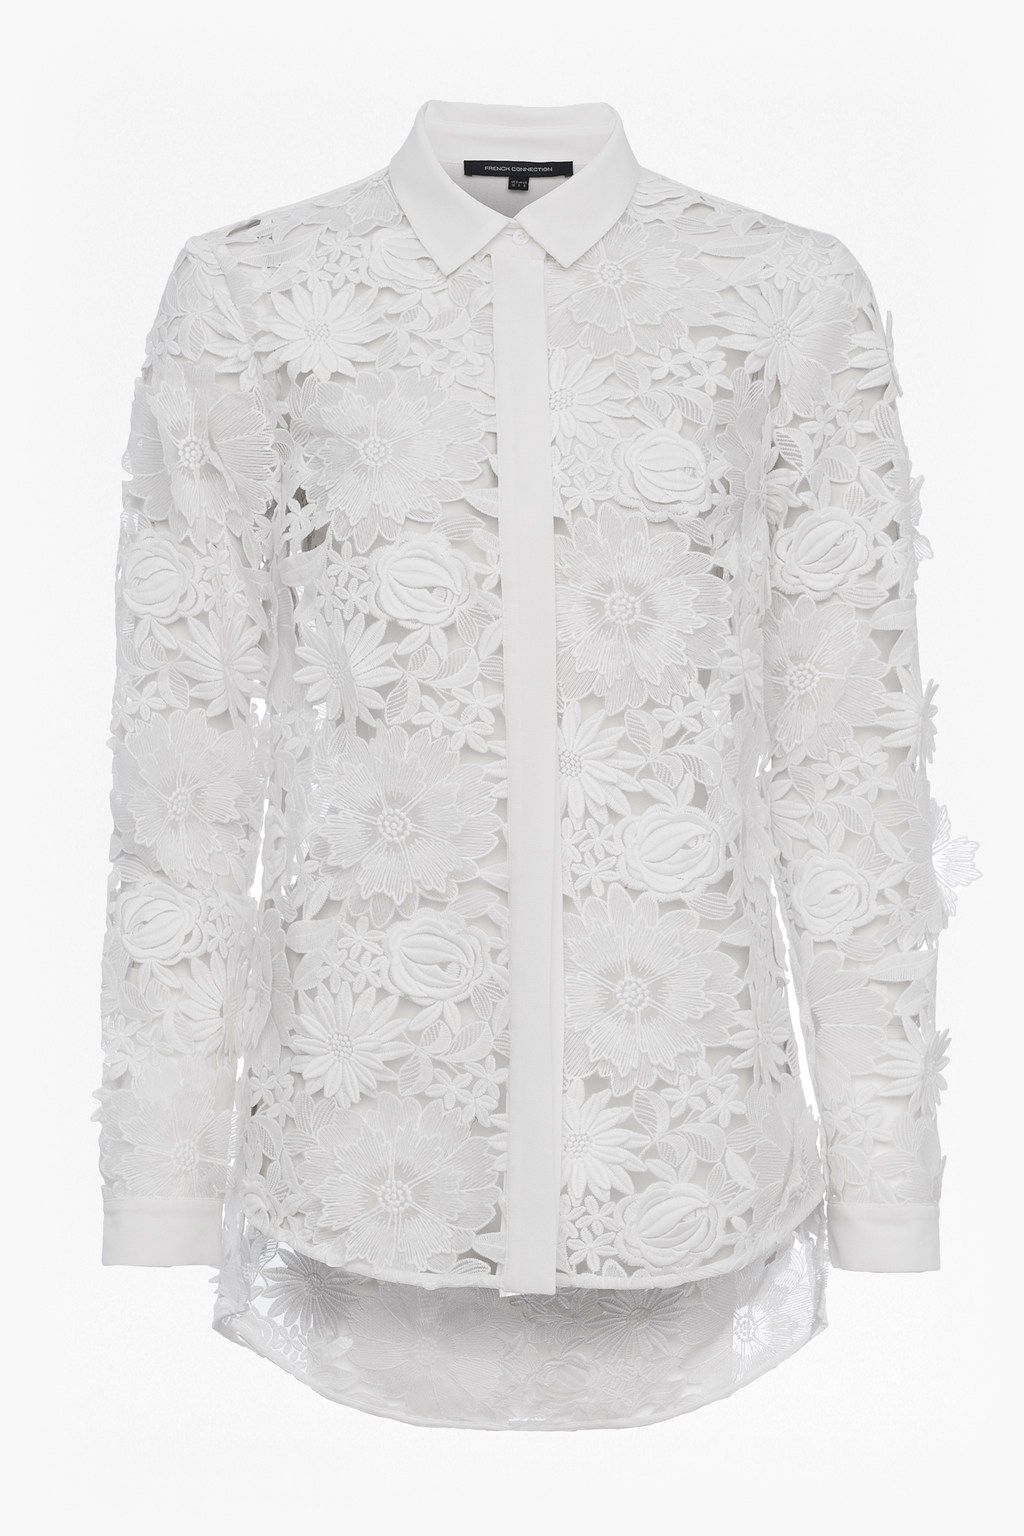 434e25ead6f4f Manzoni 3D Floral Lace Shirt | Sale | French Connection Usa | My ...